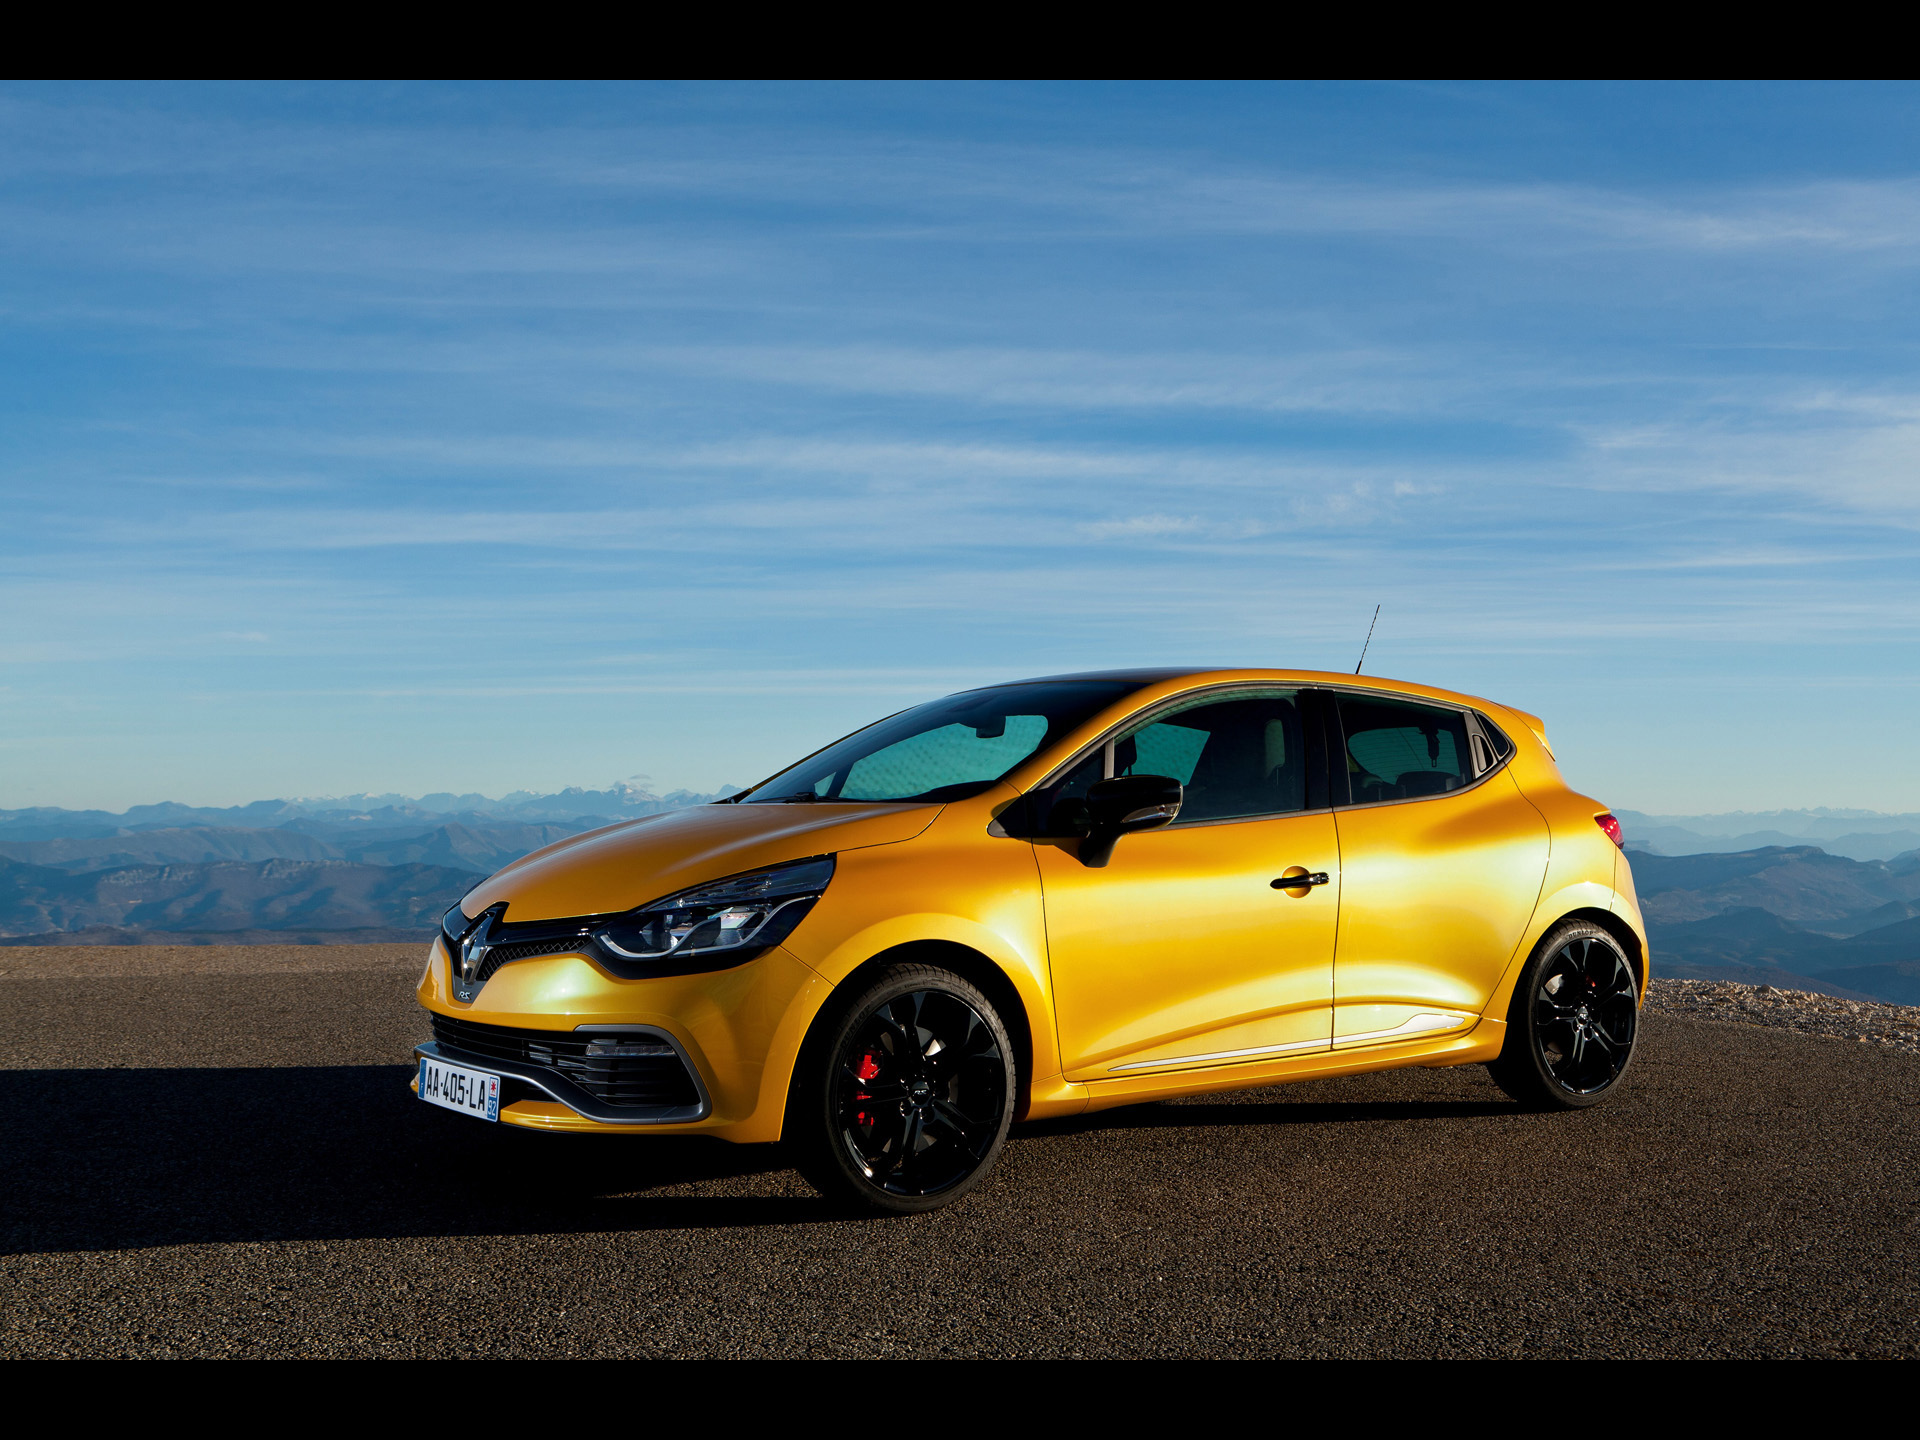 3 2013 renault clio rs 200 edc hd wallpapers backgrounds. Black Bedroom Furniture Sets. Home Design Ideas